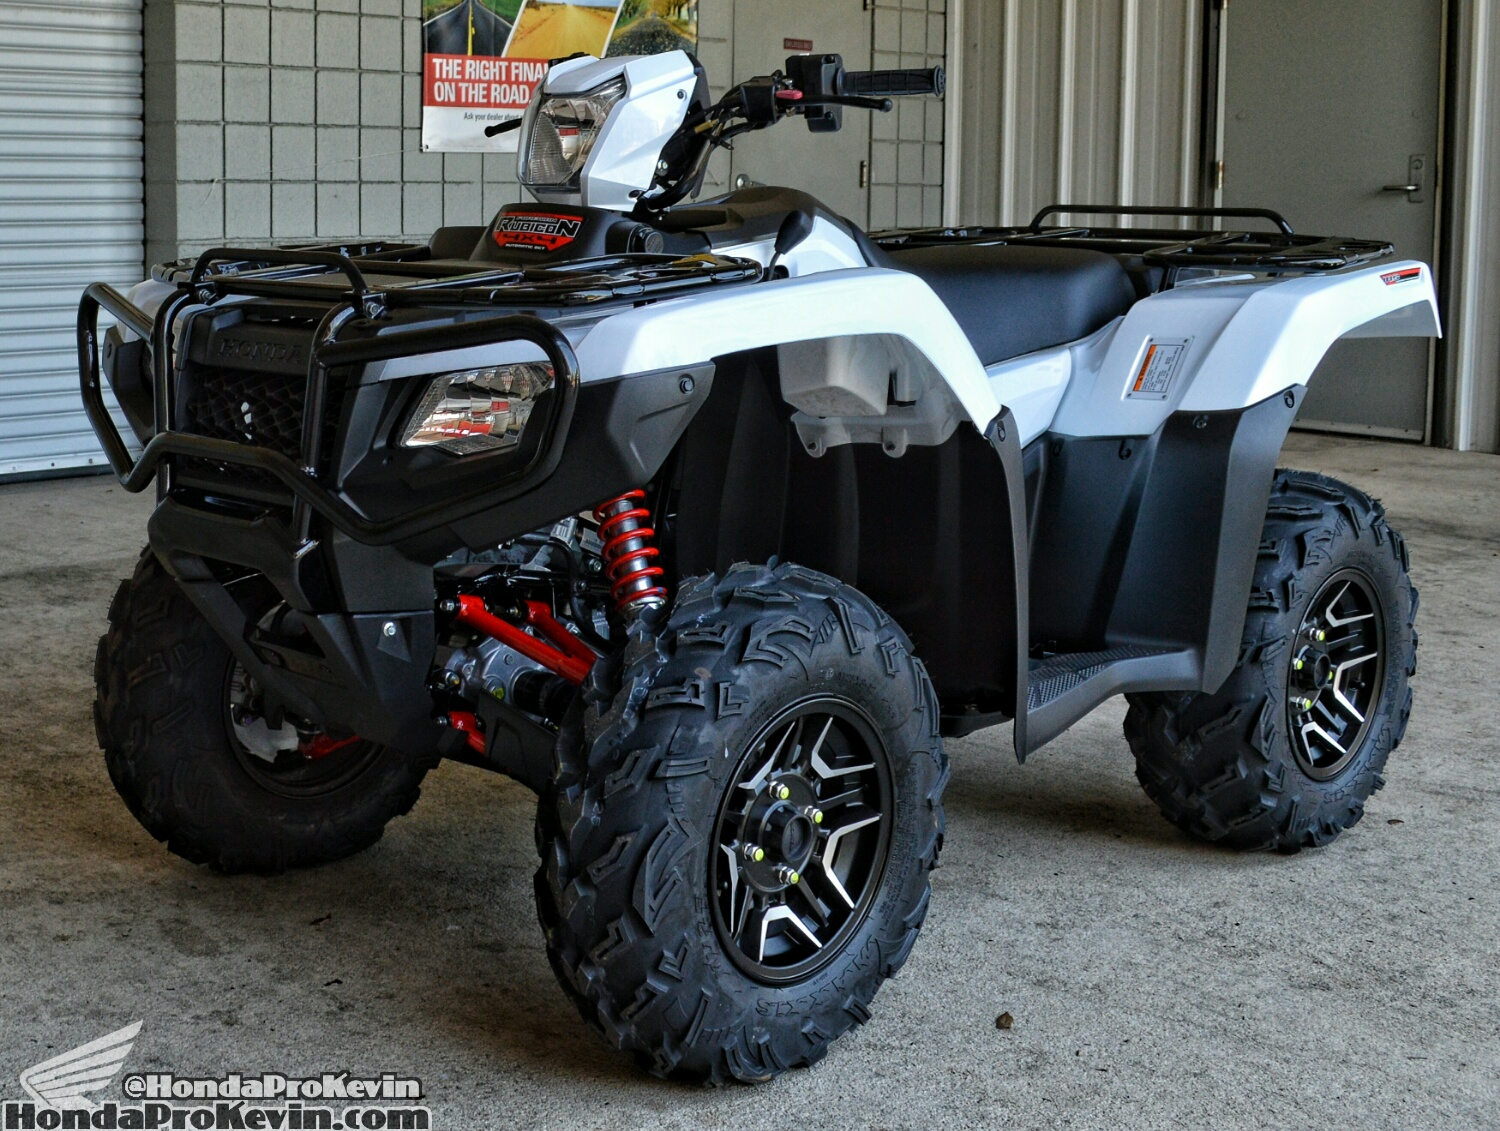 2016 Honda Rubicon 500 Deluxe ATV Review / Specs - TRX500 Horsepower & Torque Performance Numbers